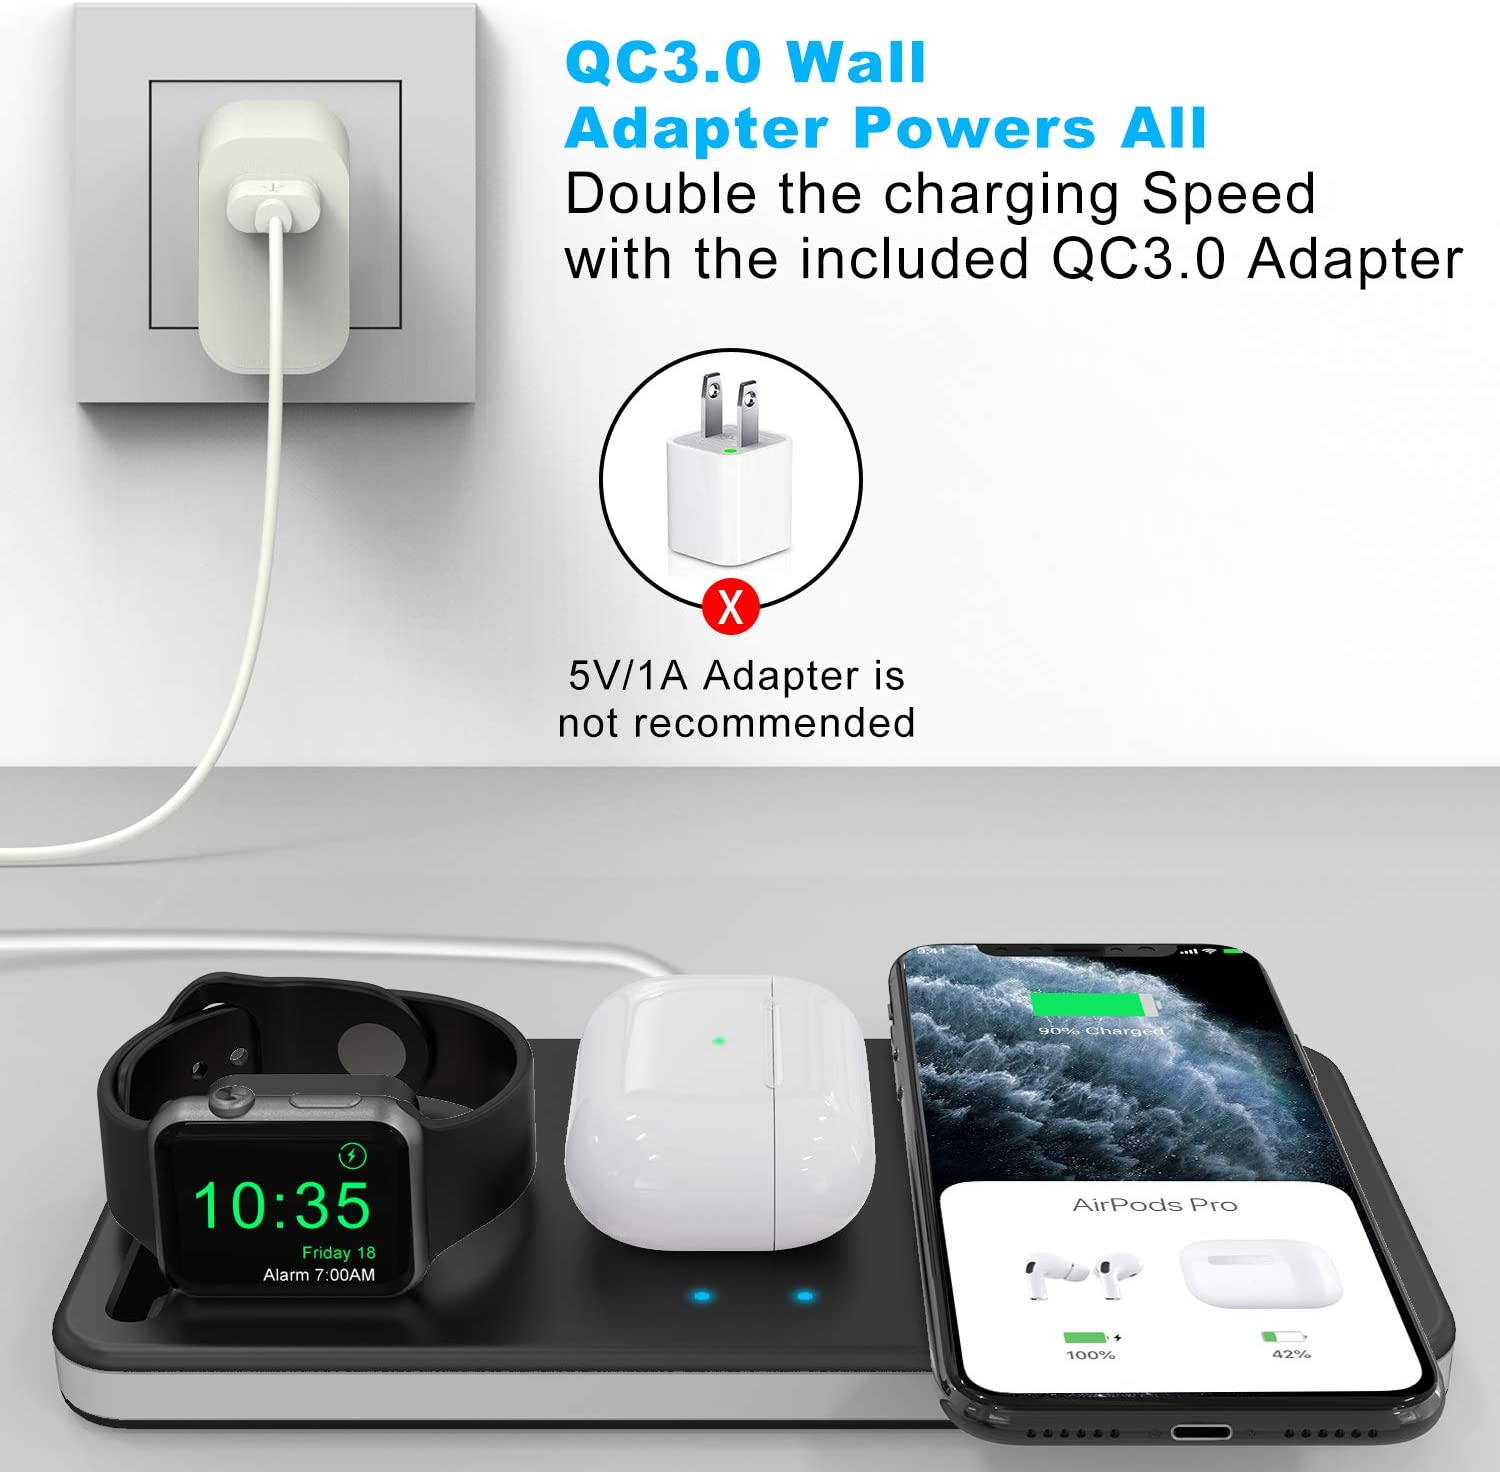 AirPods Pro Airpods and iPhone 12 12mini 12Pro 12 Pro Max SE 11 11 pro 11 Pro Max Xs X Max XR X 8 8P Adapter Included Rose Gold Yestan Wireless Charging Station Compatible with IWatch SE 6 5 4 3 2 1